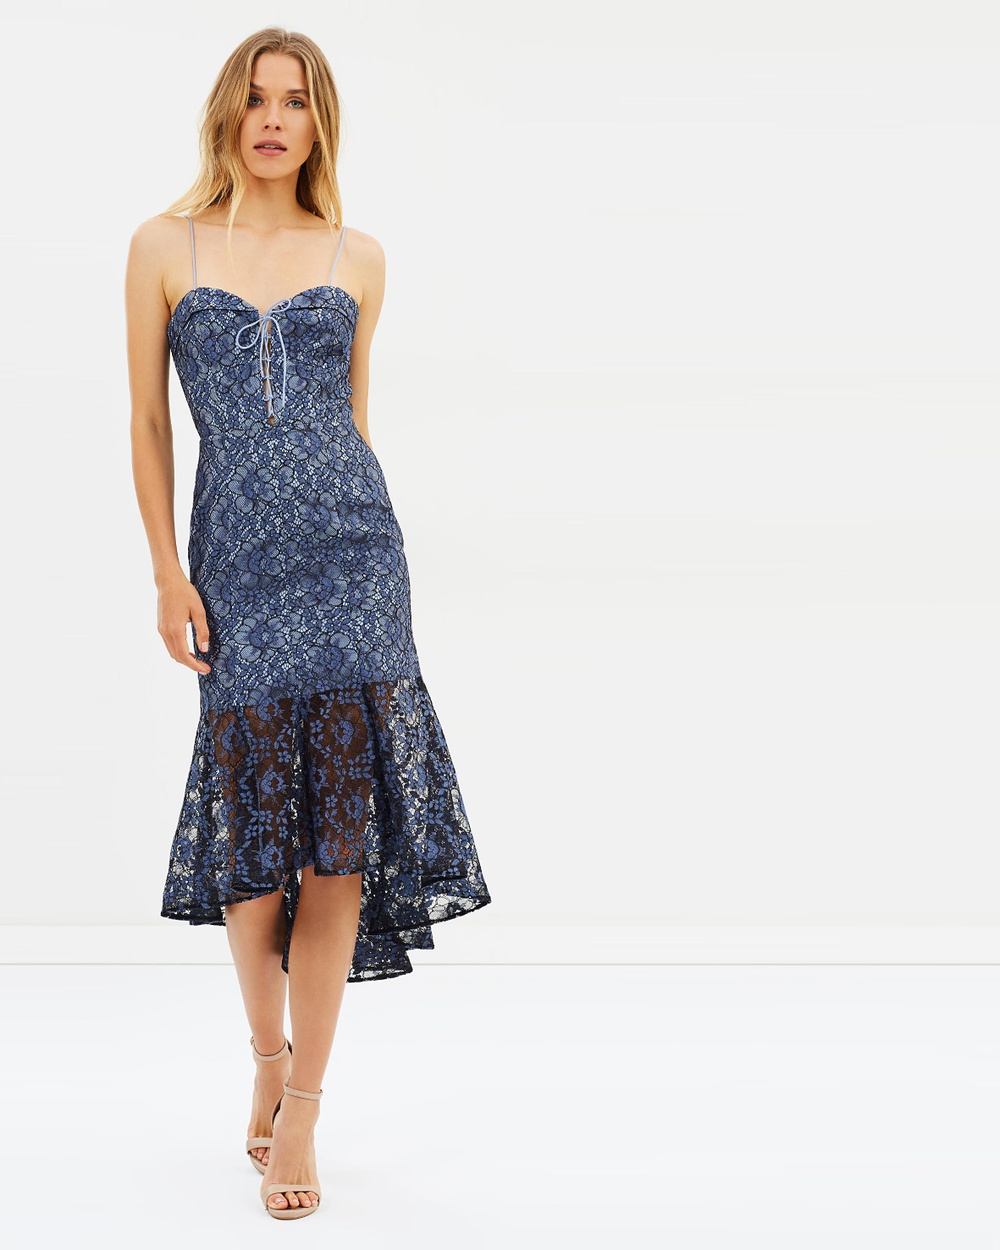 Nicholas Whisper Lace Midi Dress Dresses Black & Blue Whisper Lace Midi Dress